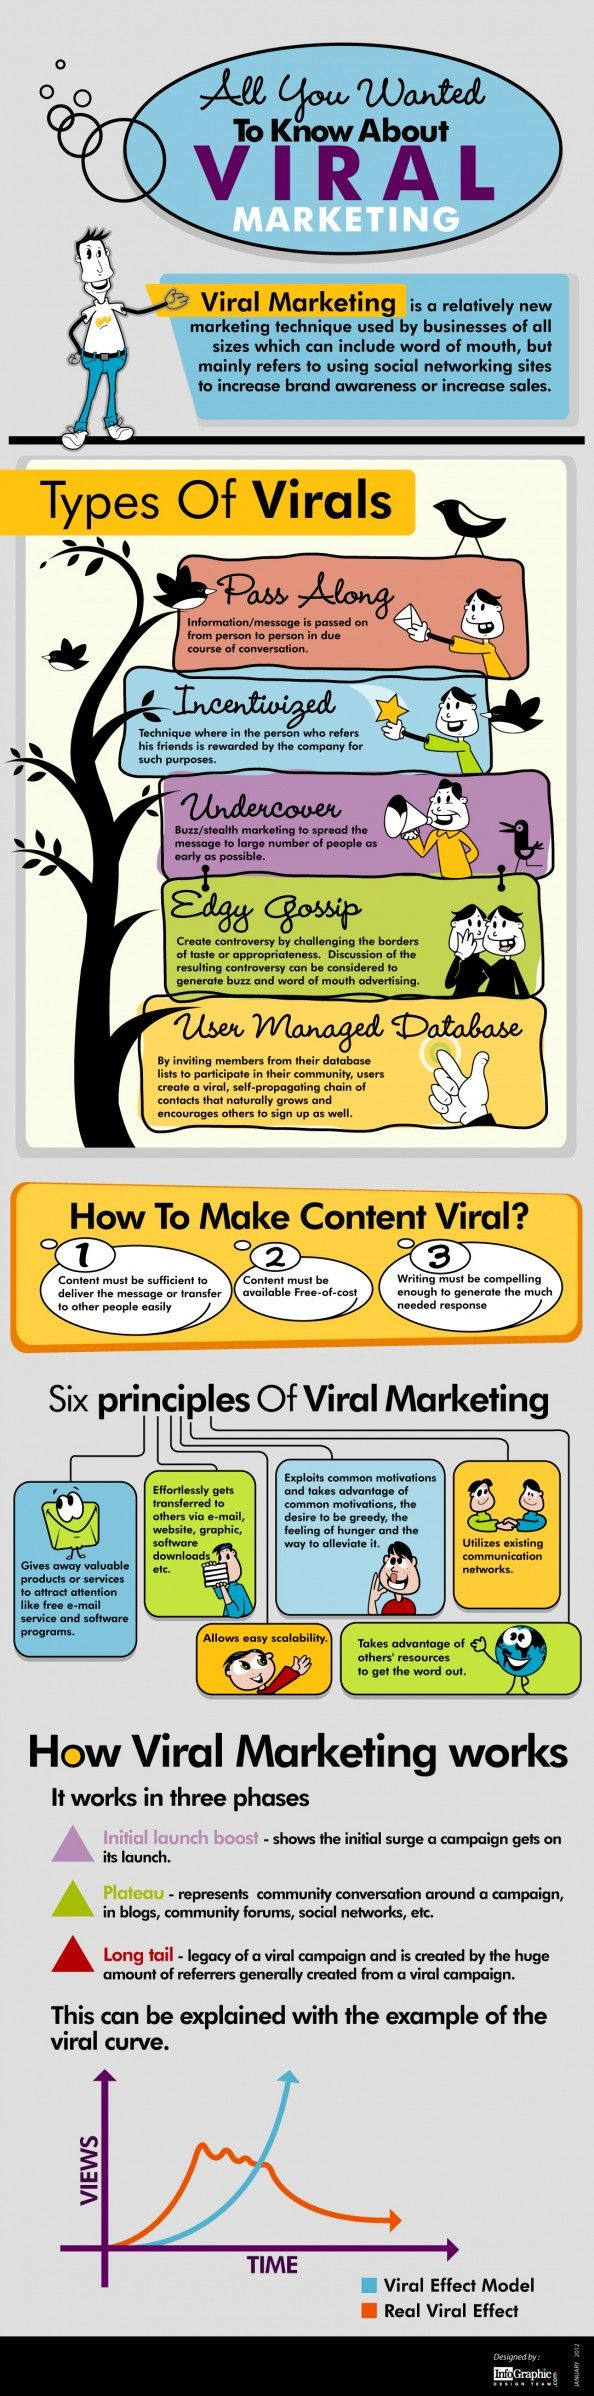 All You Wanted To Know About Viral Marketing #Infographic - http://blog.hepcatsmarketing.com - check out our blog network for more news like this!